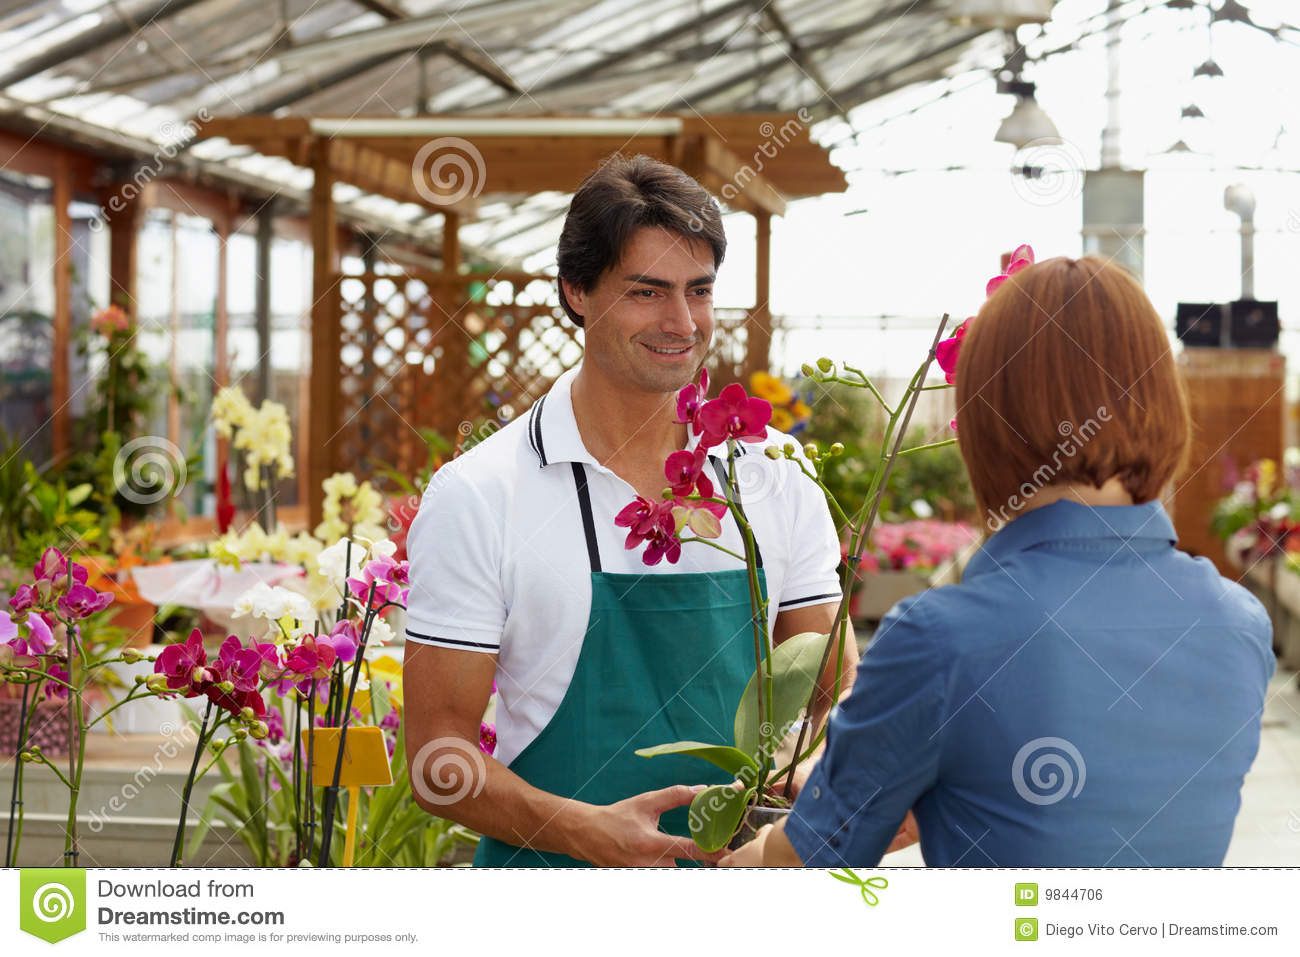 Buying orchids woman